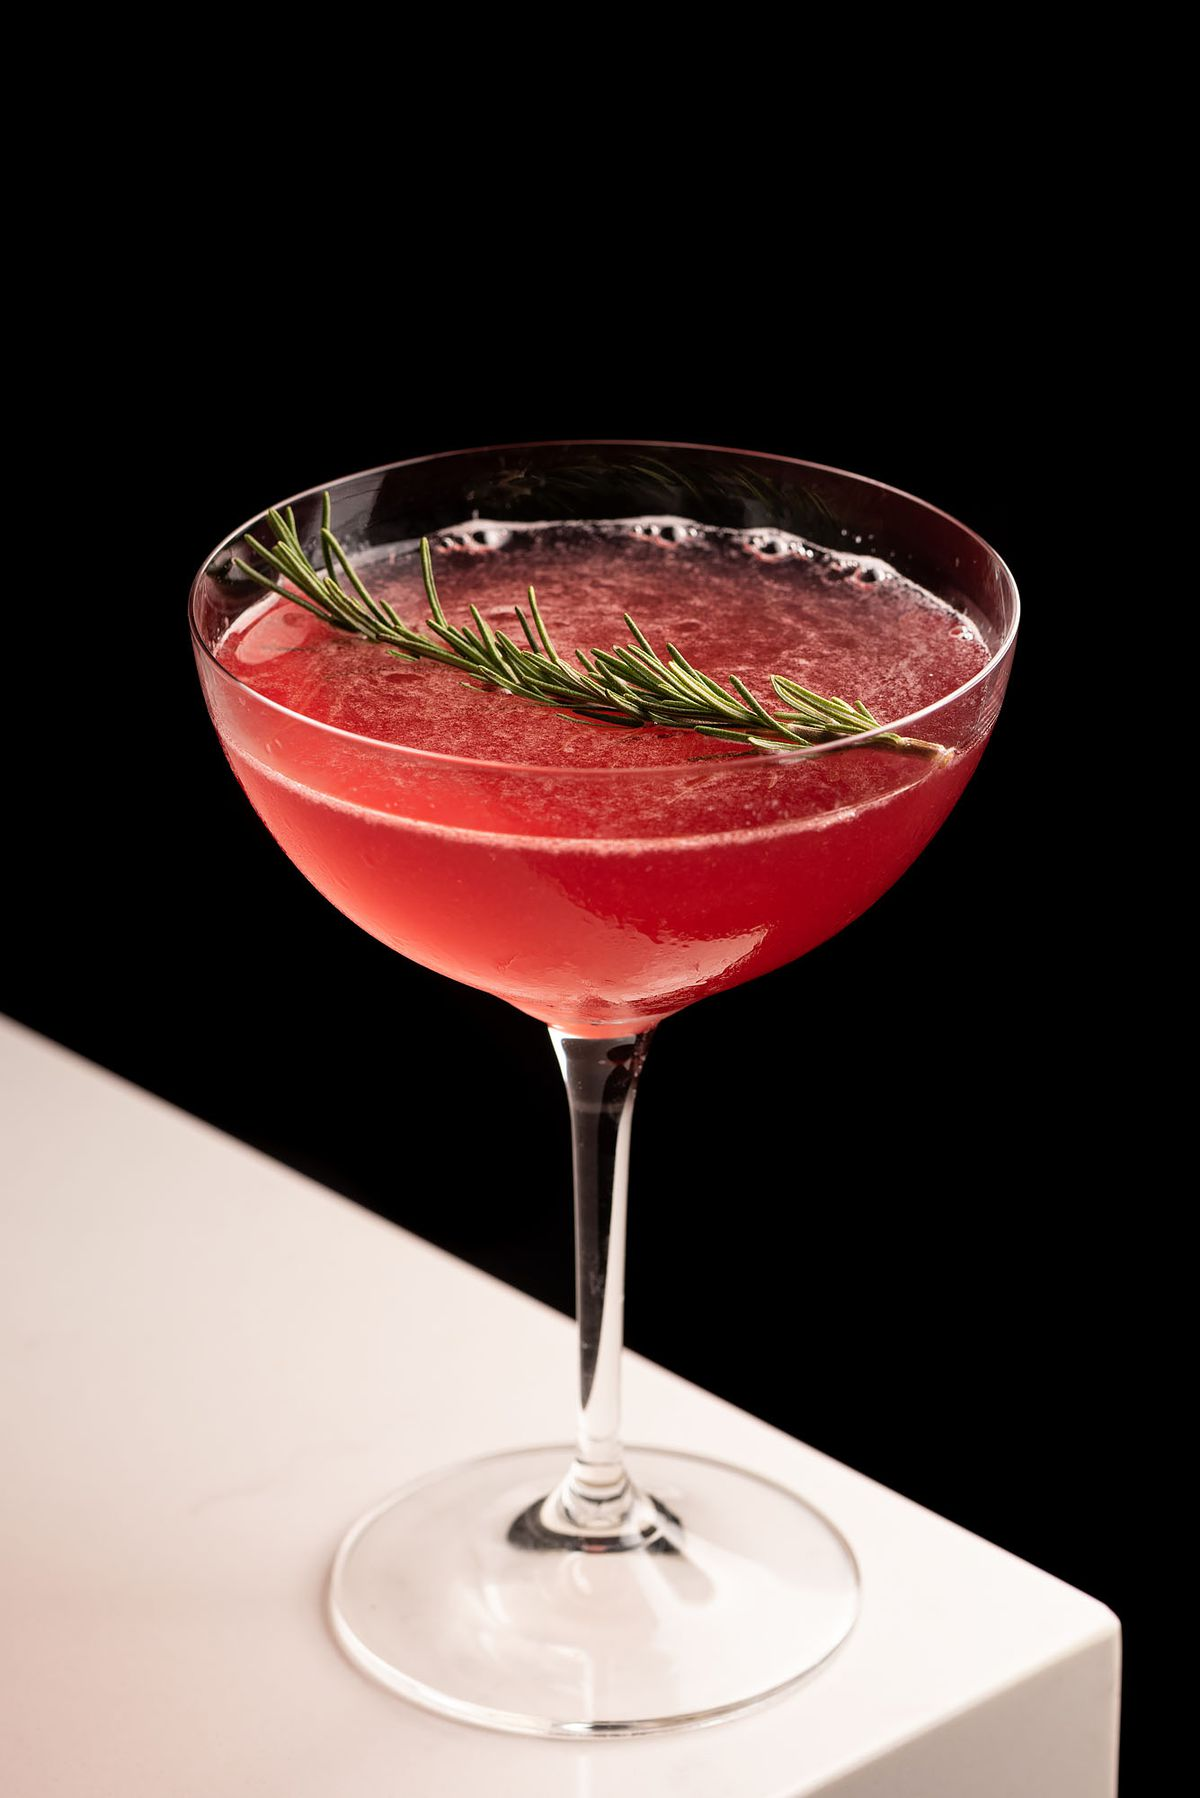 A red hued cocktail with a sprig of rosemary.